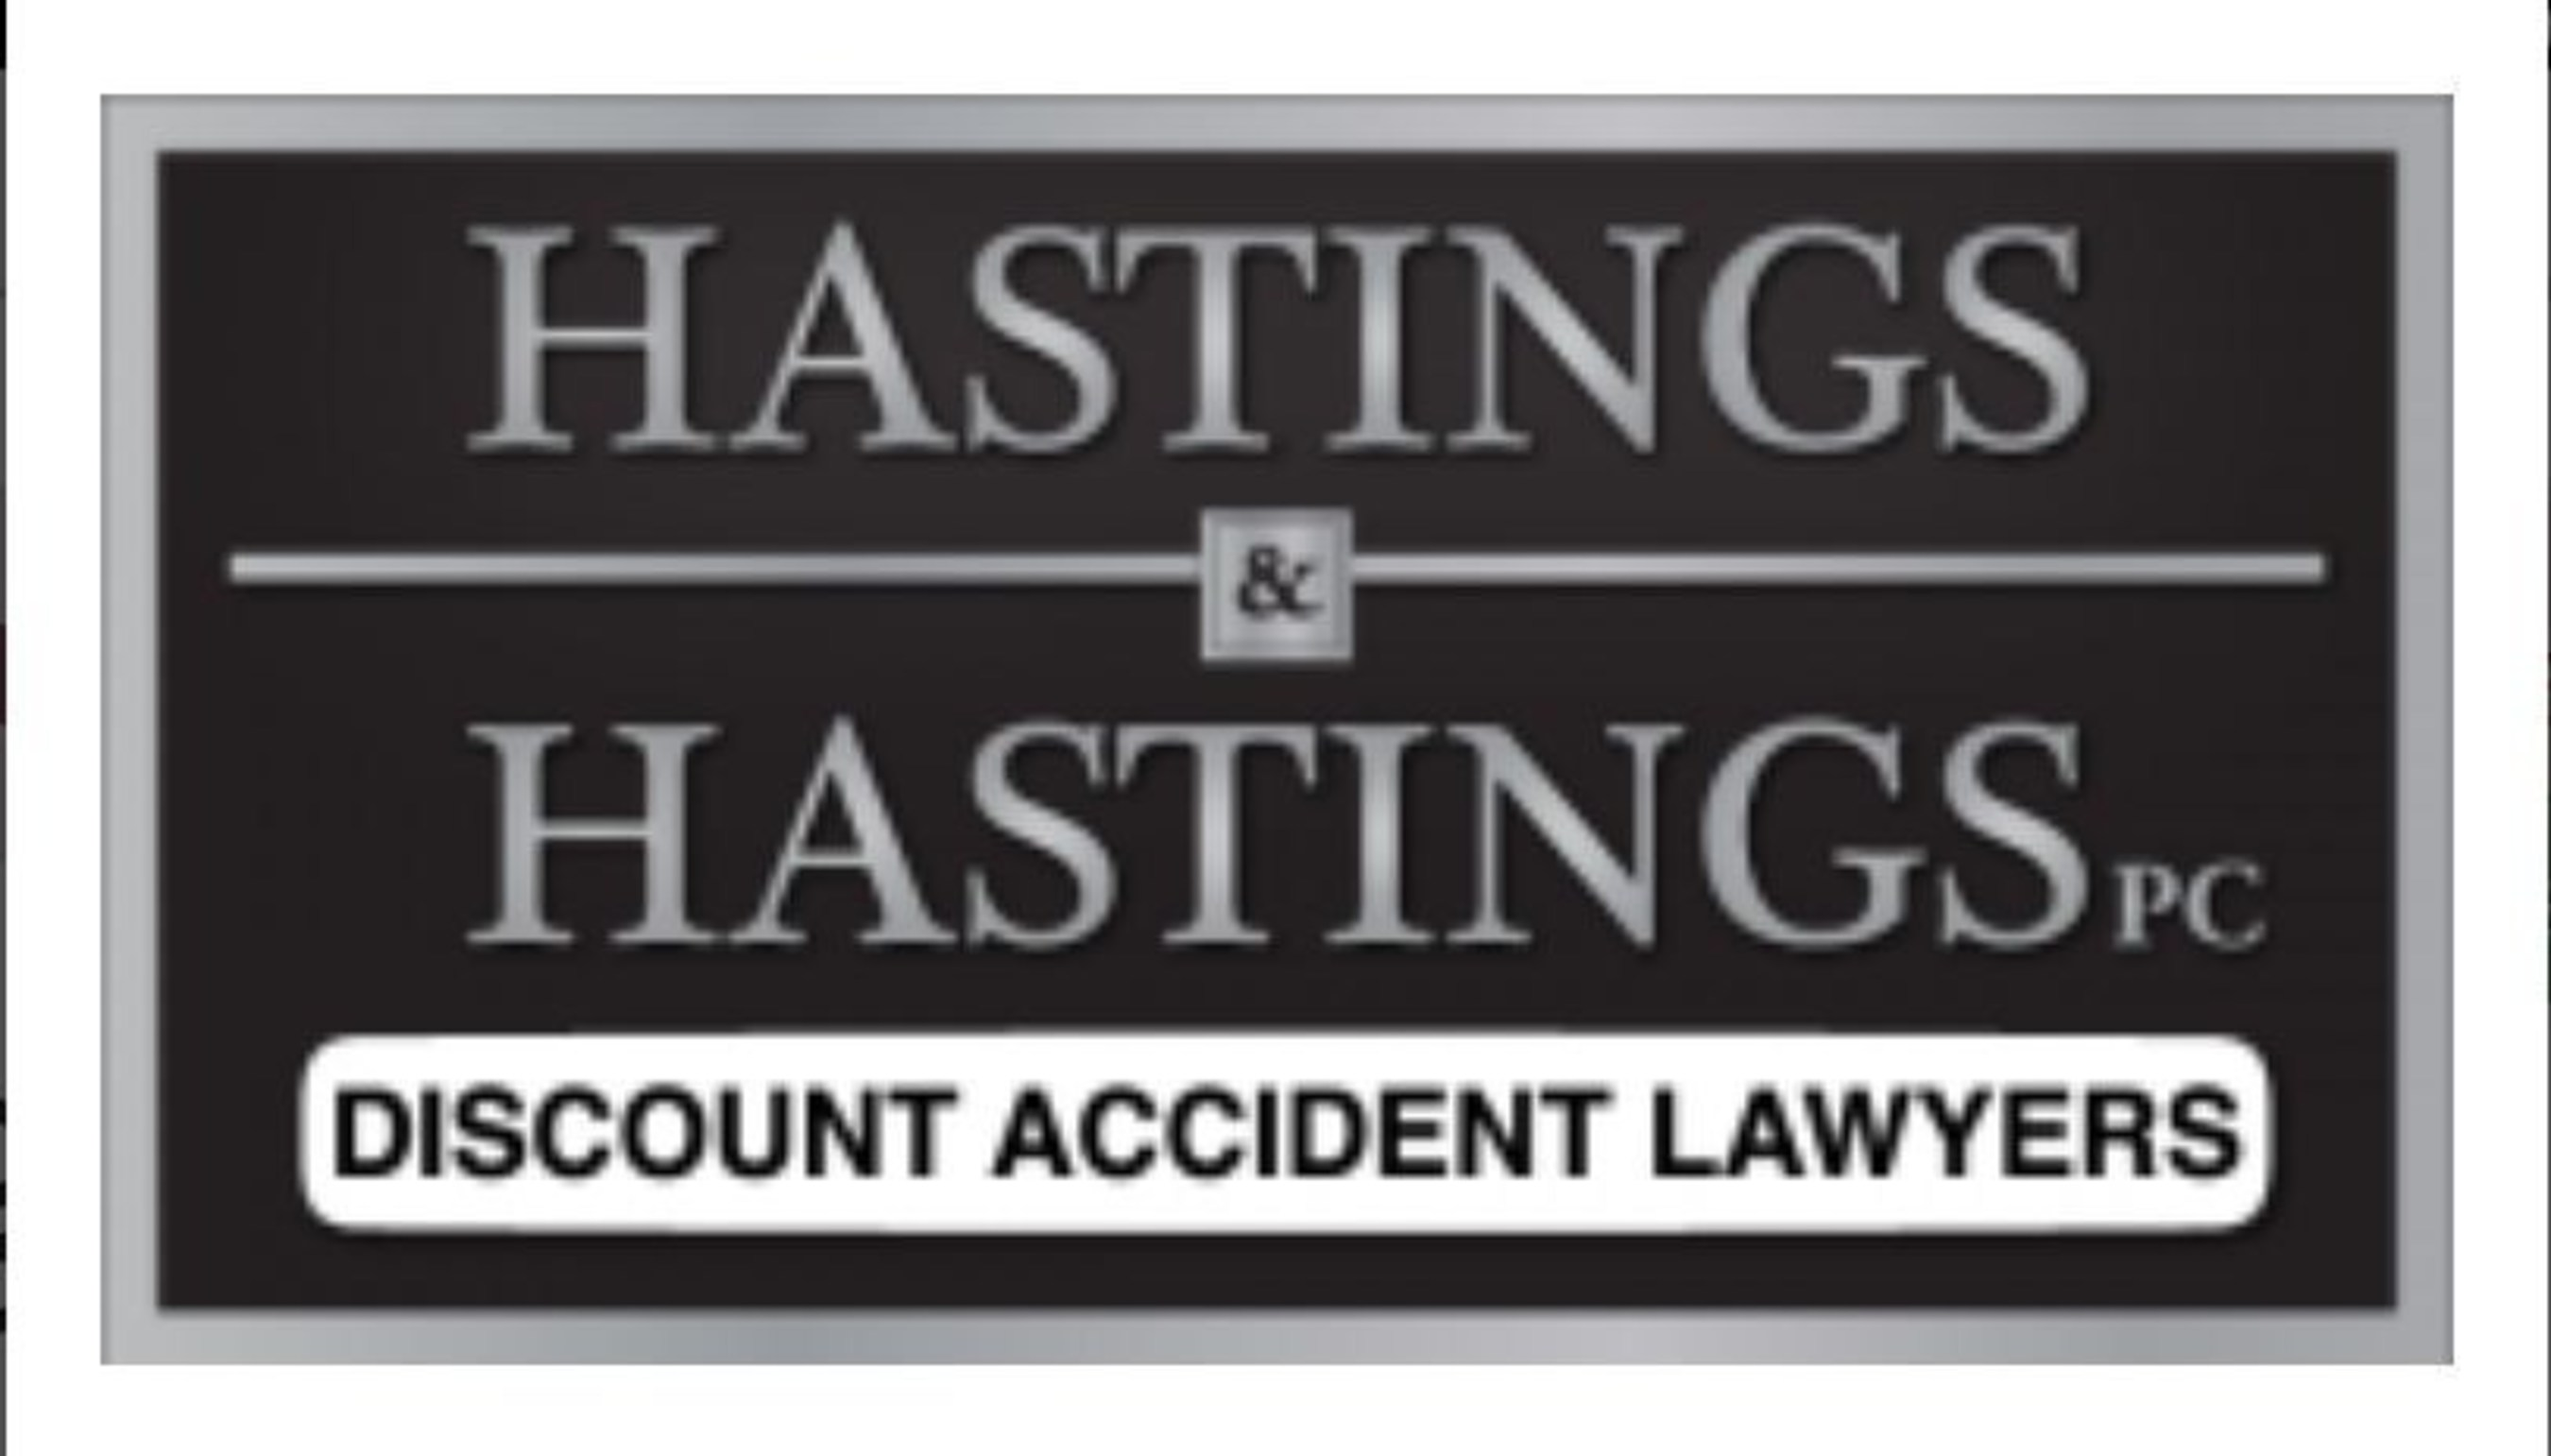 Hastings & Hastings Offers Hiking Safety Tips and Suggestions